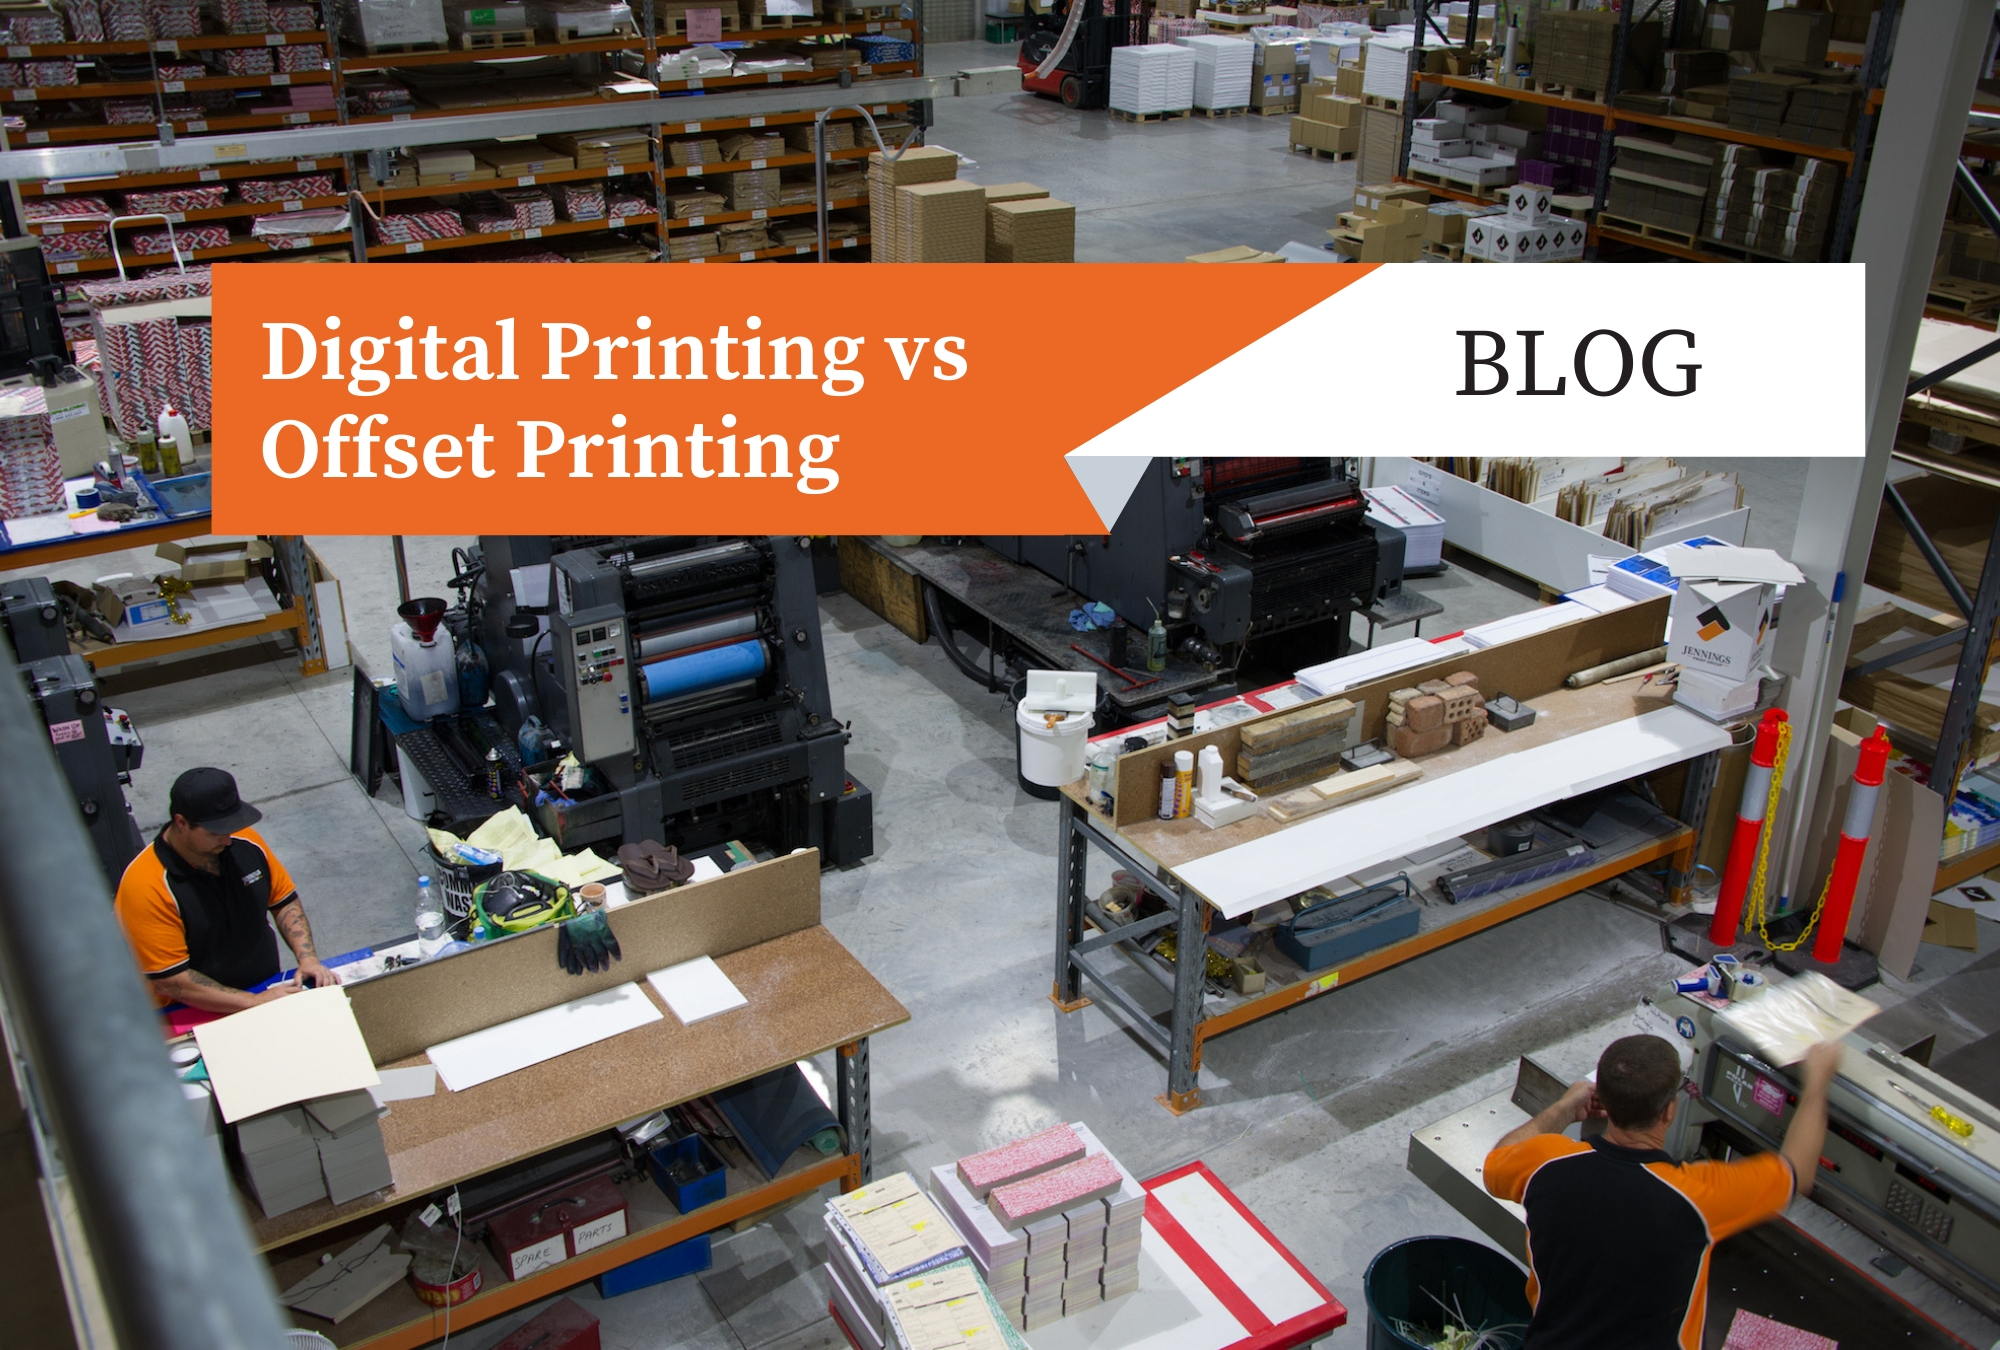 Difference between digital printing and offset printing?